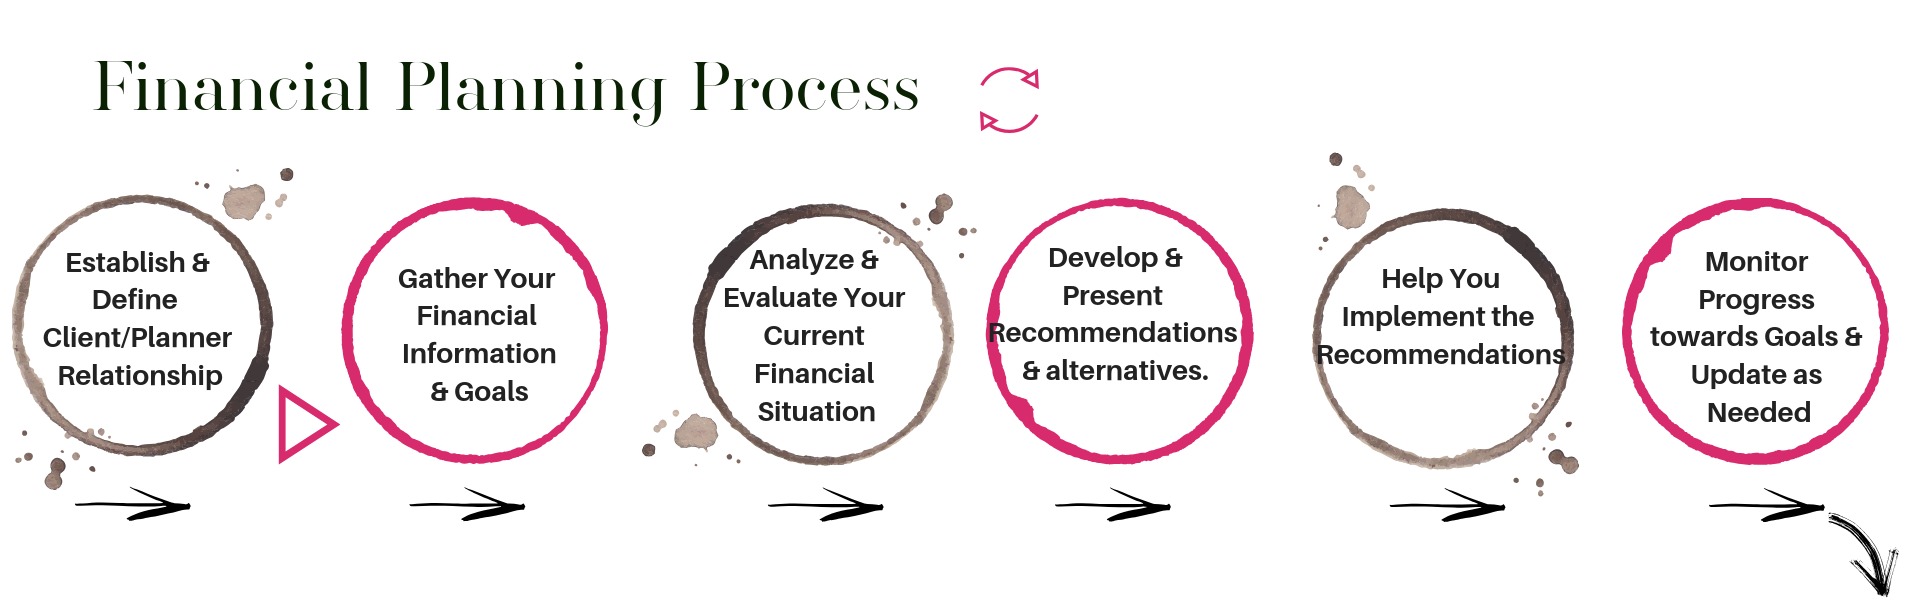 Financial Planning Process 2018.png